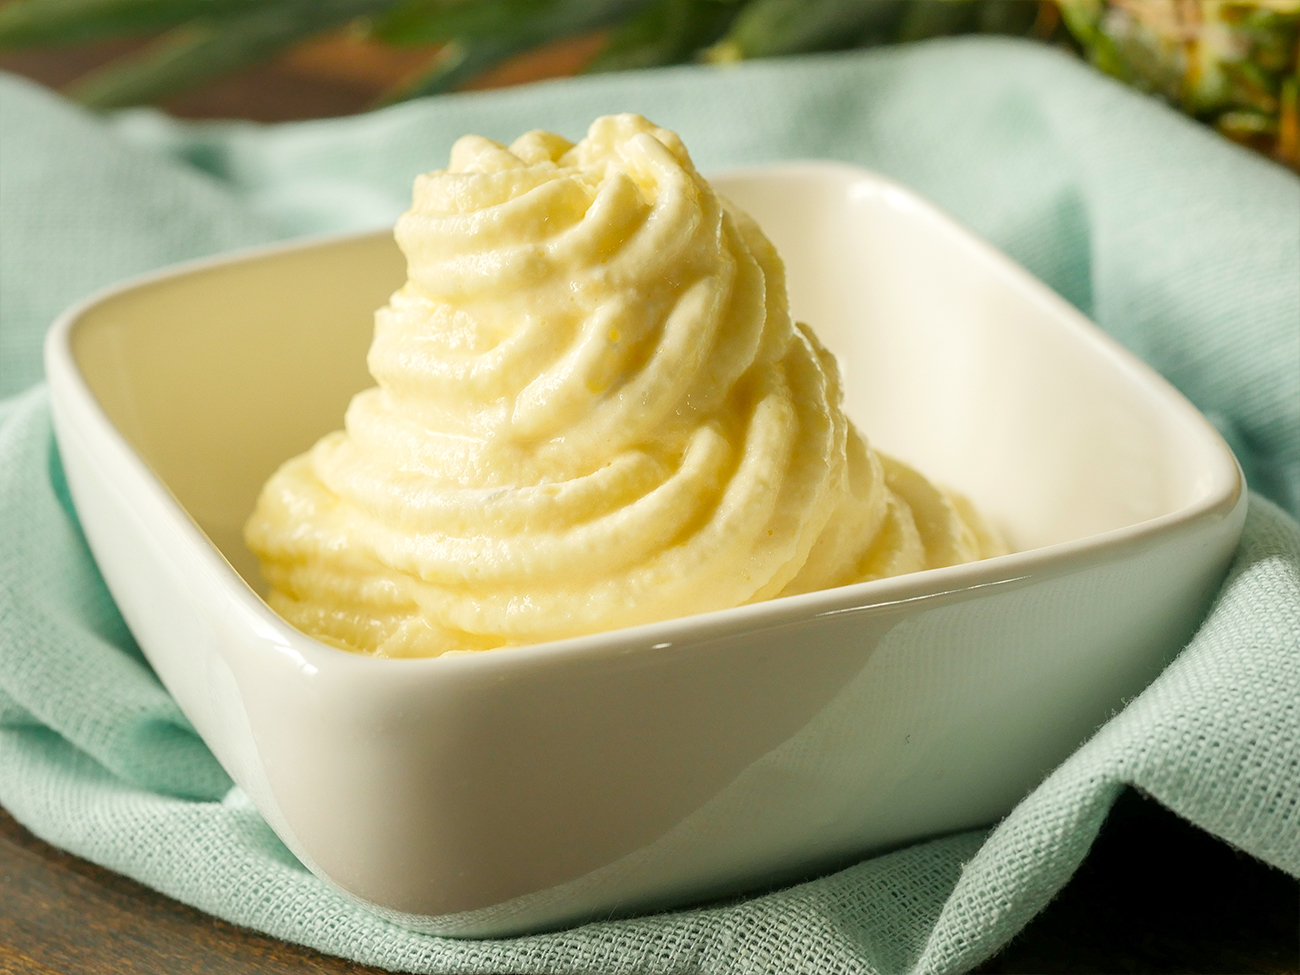 Dole Whip Horizontal 2